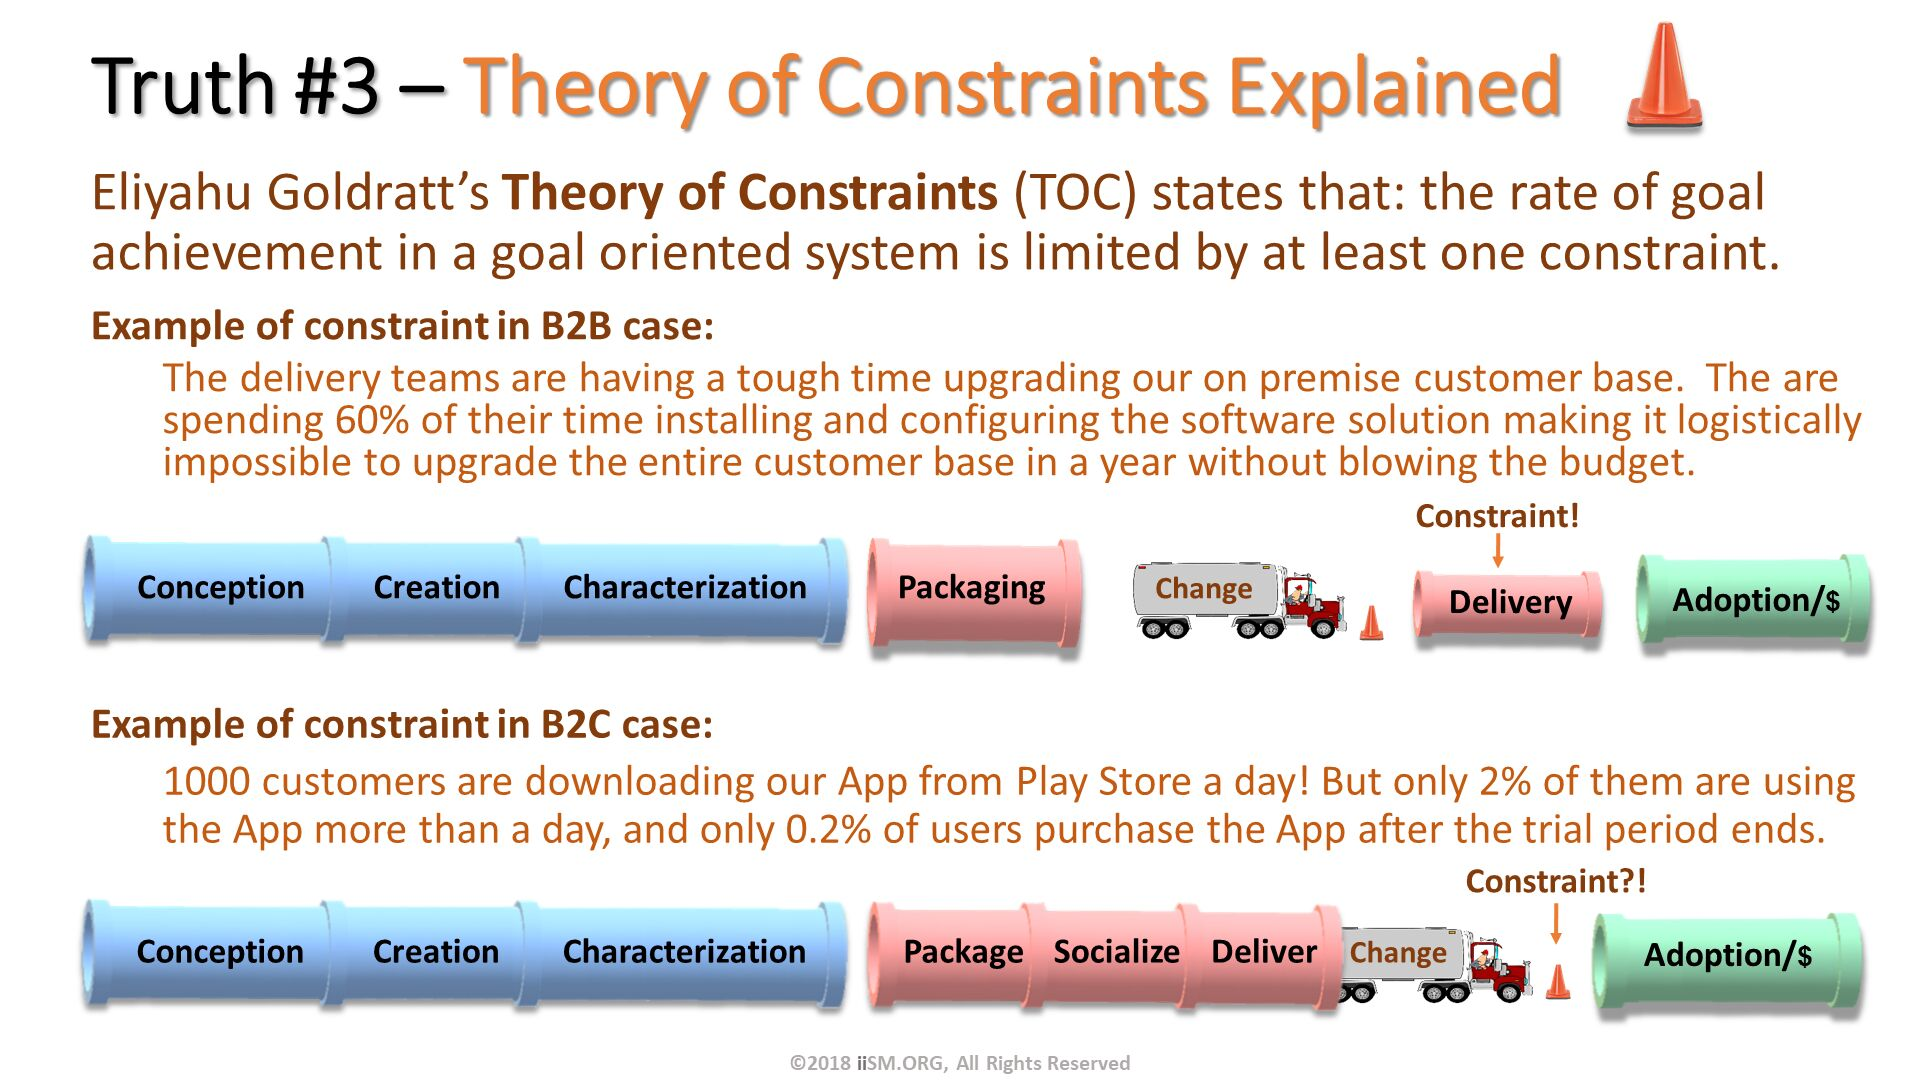 Truth #3 – Theory of Constraints Explained. Eliyahu Goldratt's Theory of Constraints (TOC) states that: the rate of goal achievement in a goal oriented system is limited by at least one constraint. Example of constraint in B2B case:  The delivery teams are having a tough time upgrading our on premise customer base.  The are spending 60% of their time installing and configuring the software solution making it logistically impossible to upgrade the entire customer base in a year without blowing the budget. Example of constraint in B2C case:  1000 customers are downloading our App from Play Store a day! But only 2% of them are using the App more than a day, and only 0.2% of users purchase the App after the trial period ends. . Constraint!. Constraint?!. ©2018 iiSM.ORG, All Rights Reserved. Adoption/$.